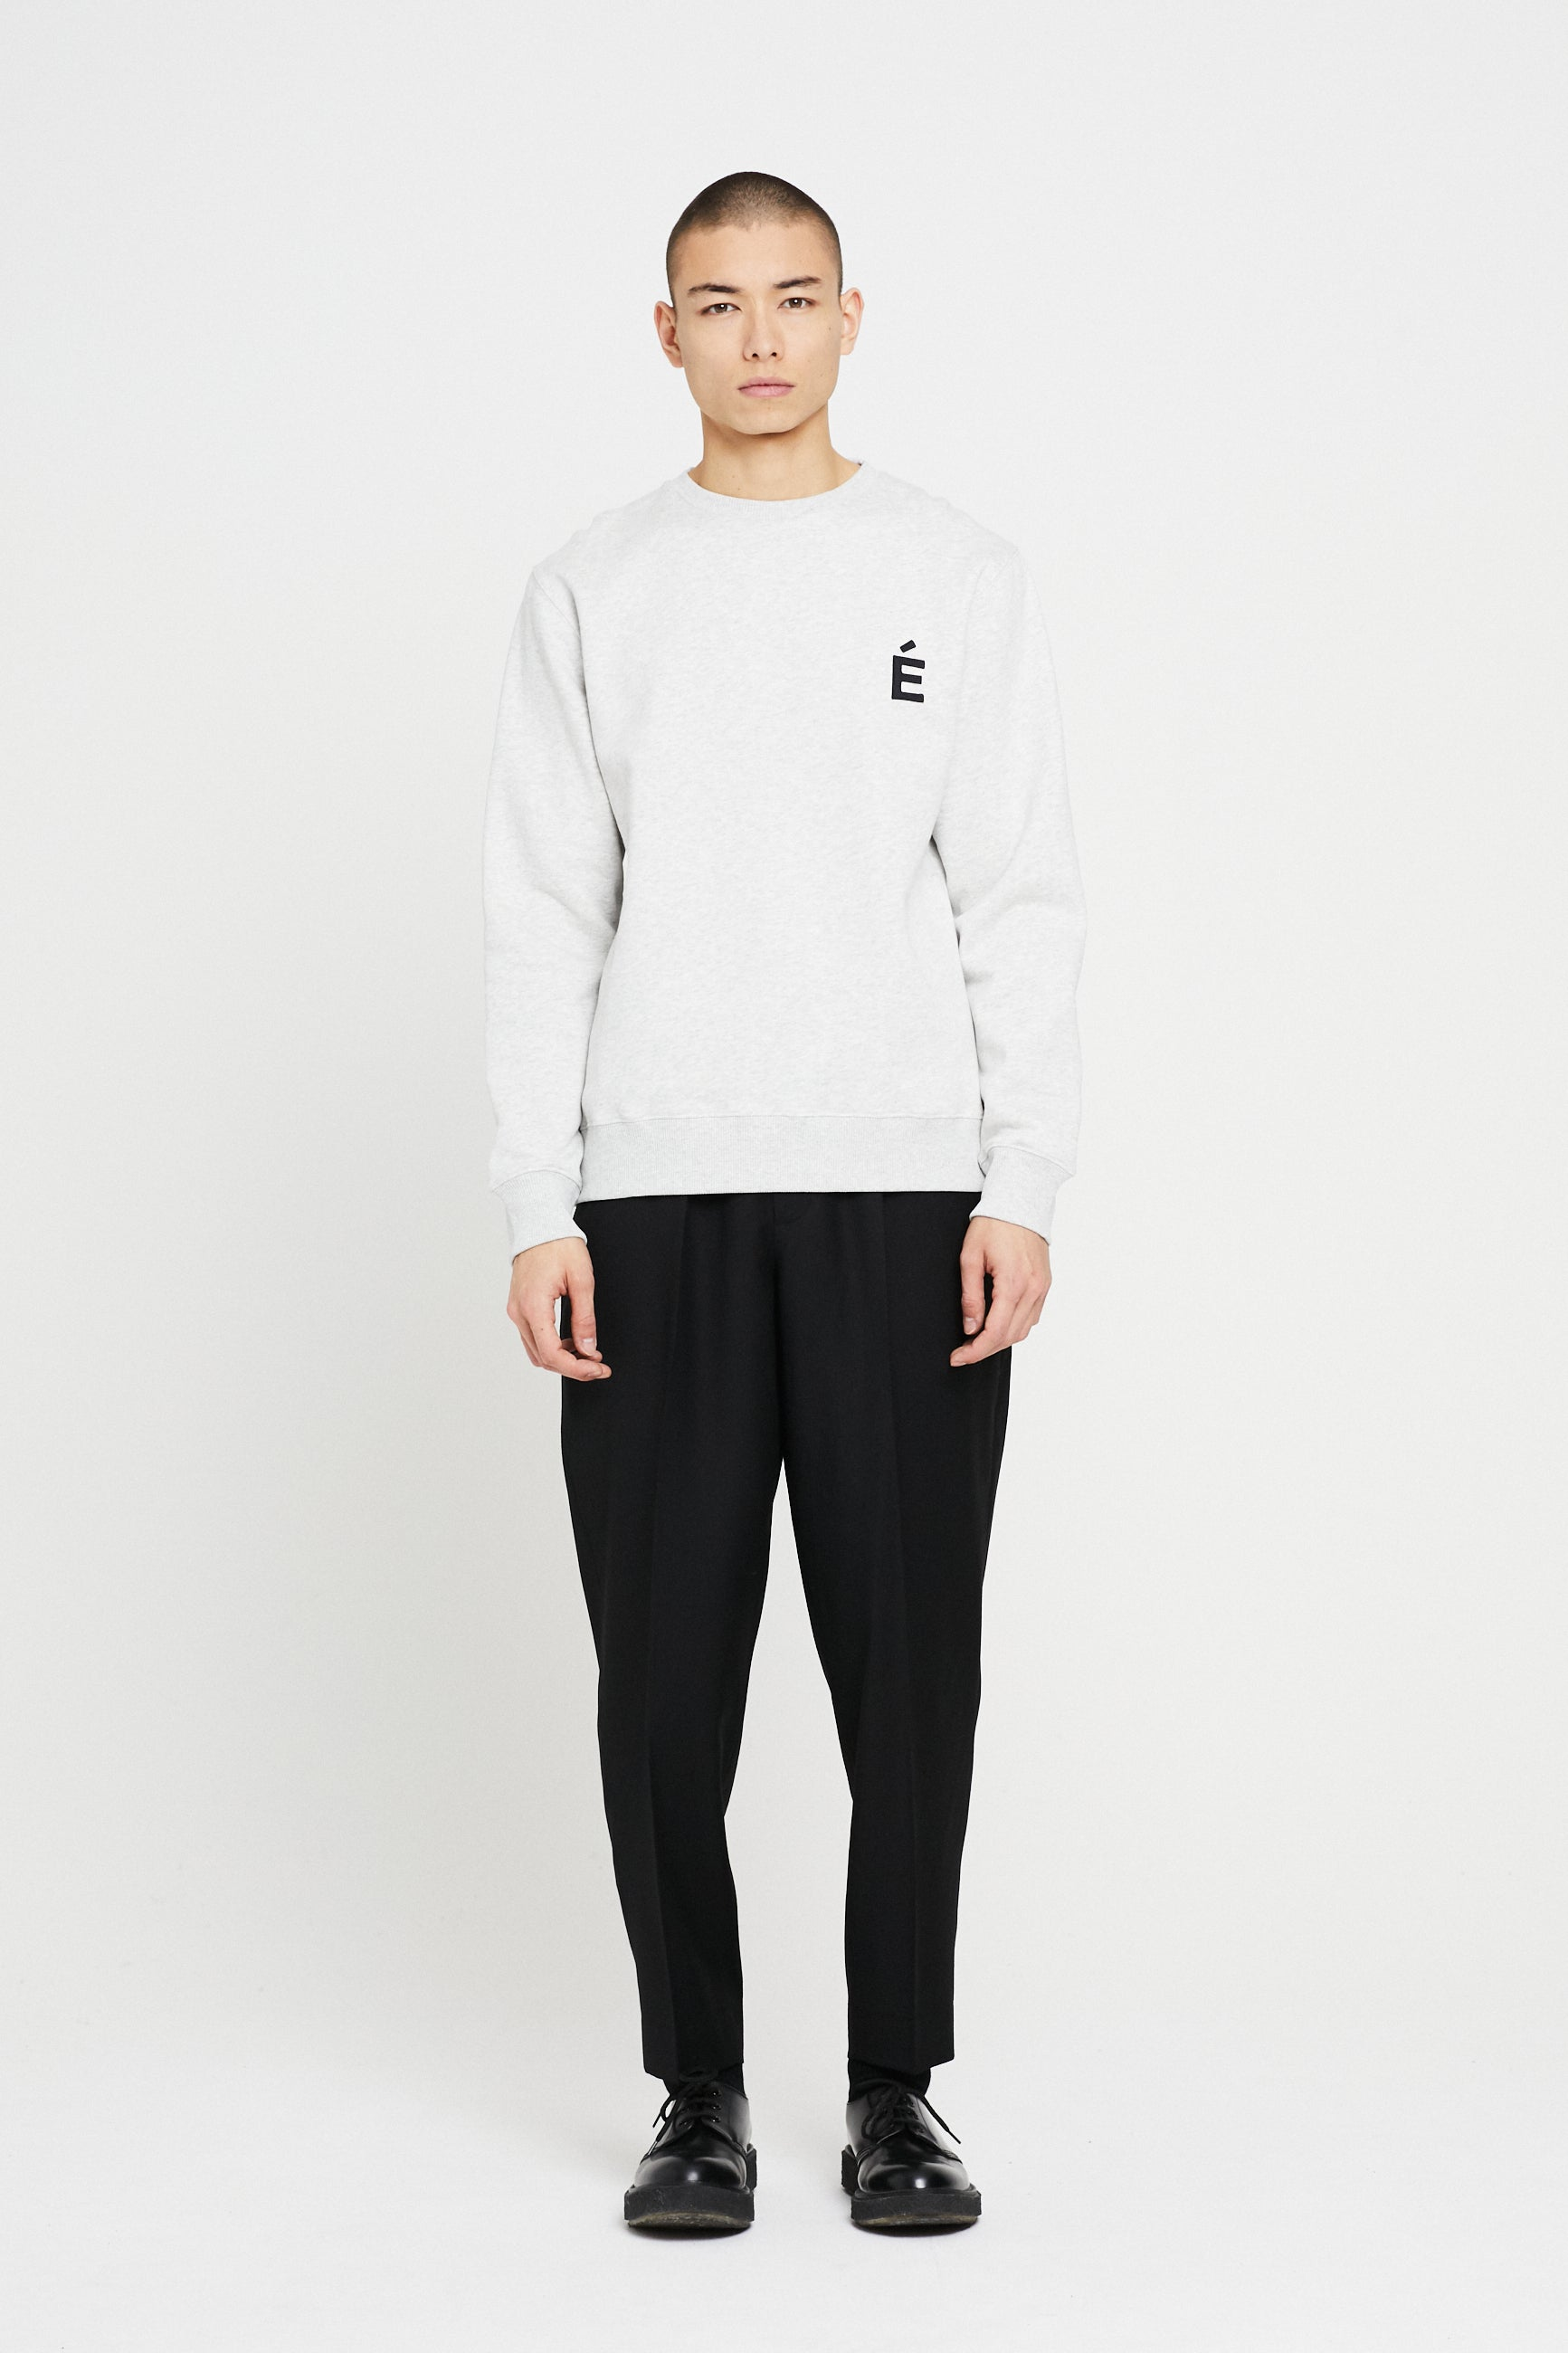 Études Story Patch Heather Grey Sweatshirt 1